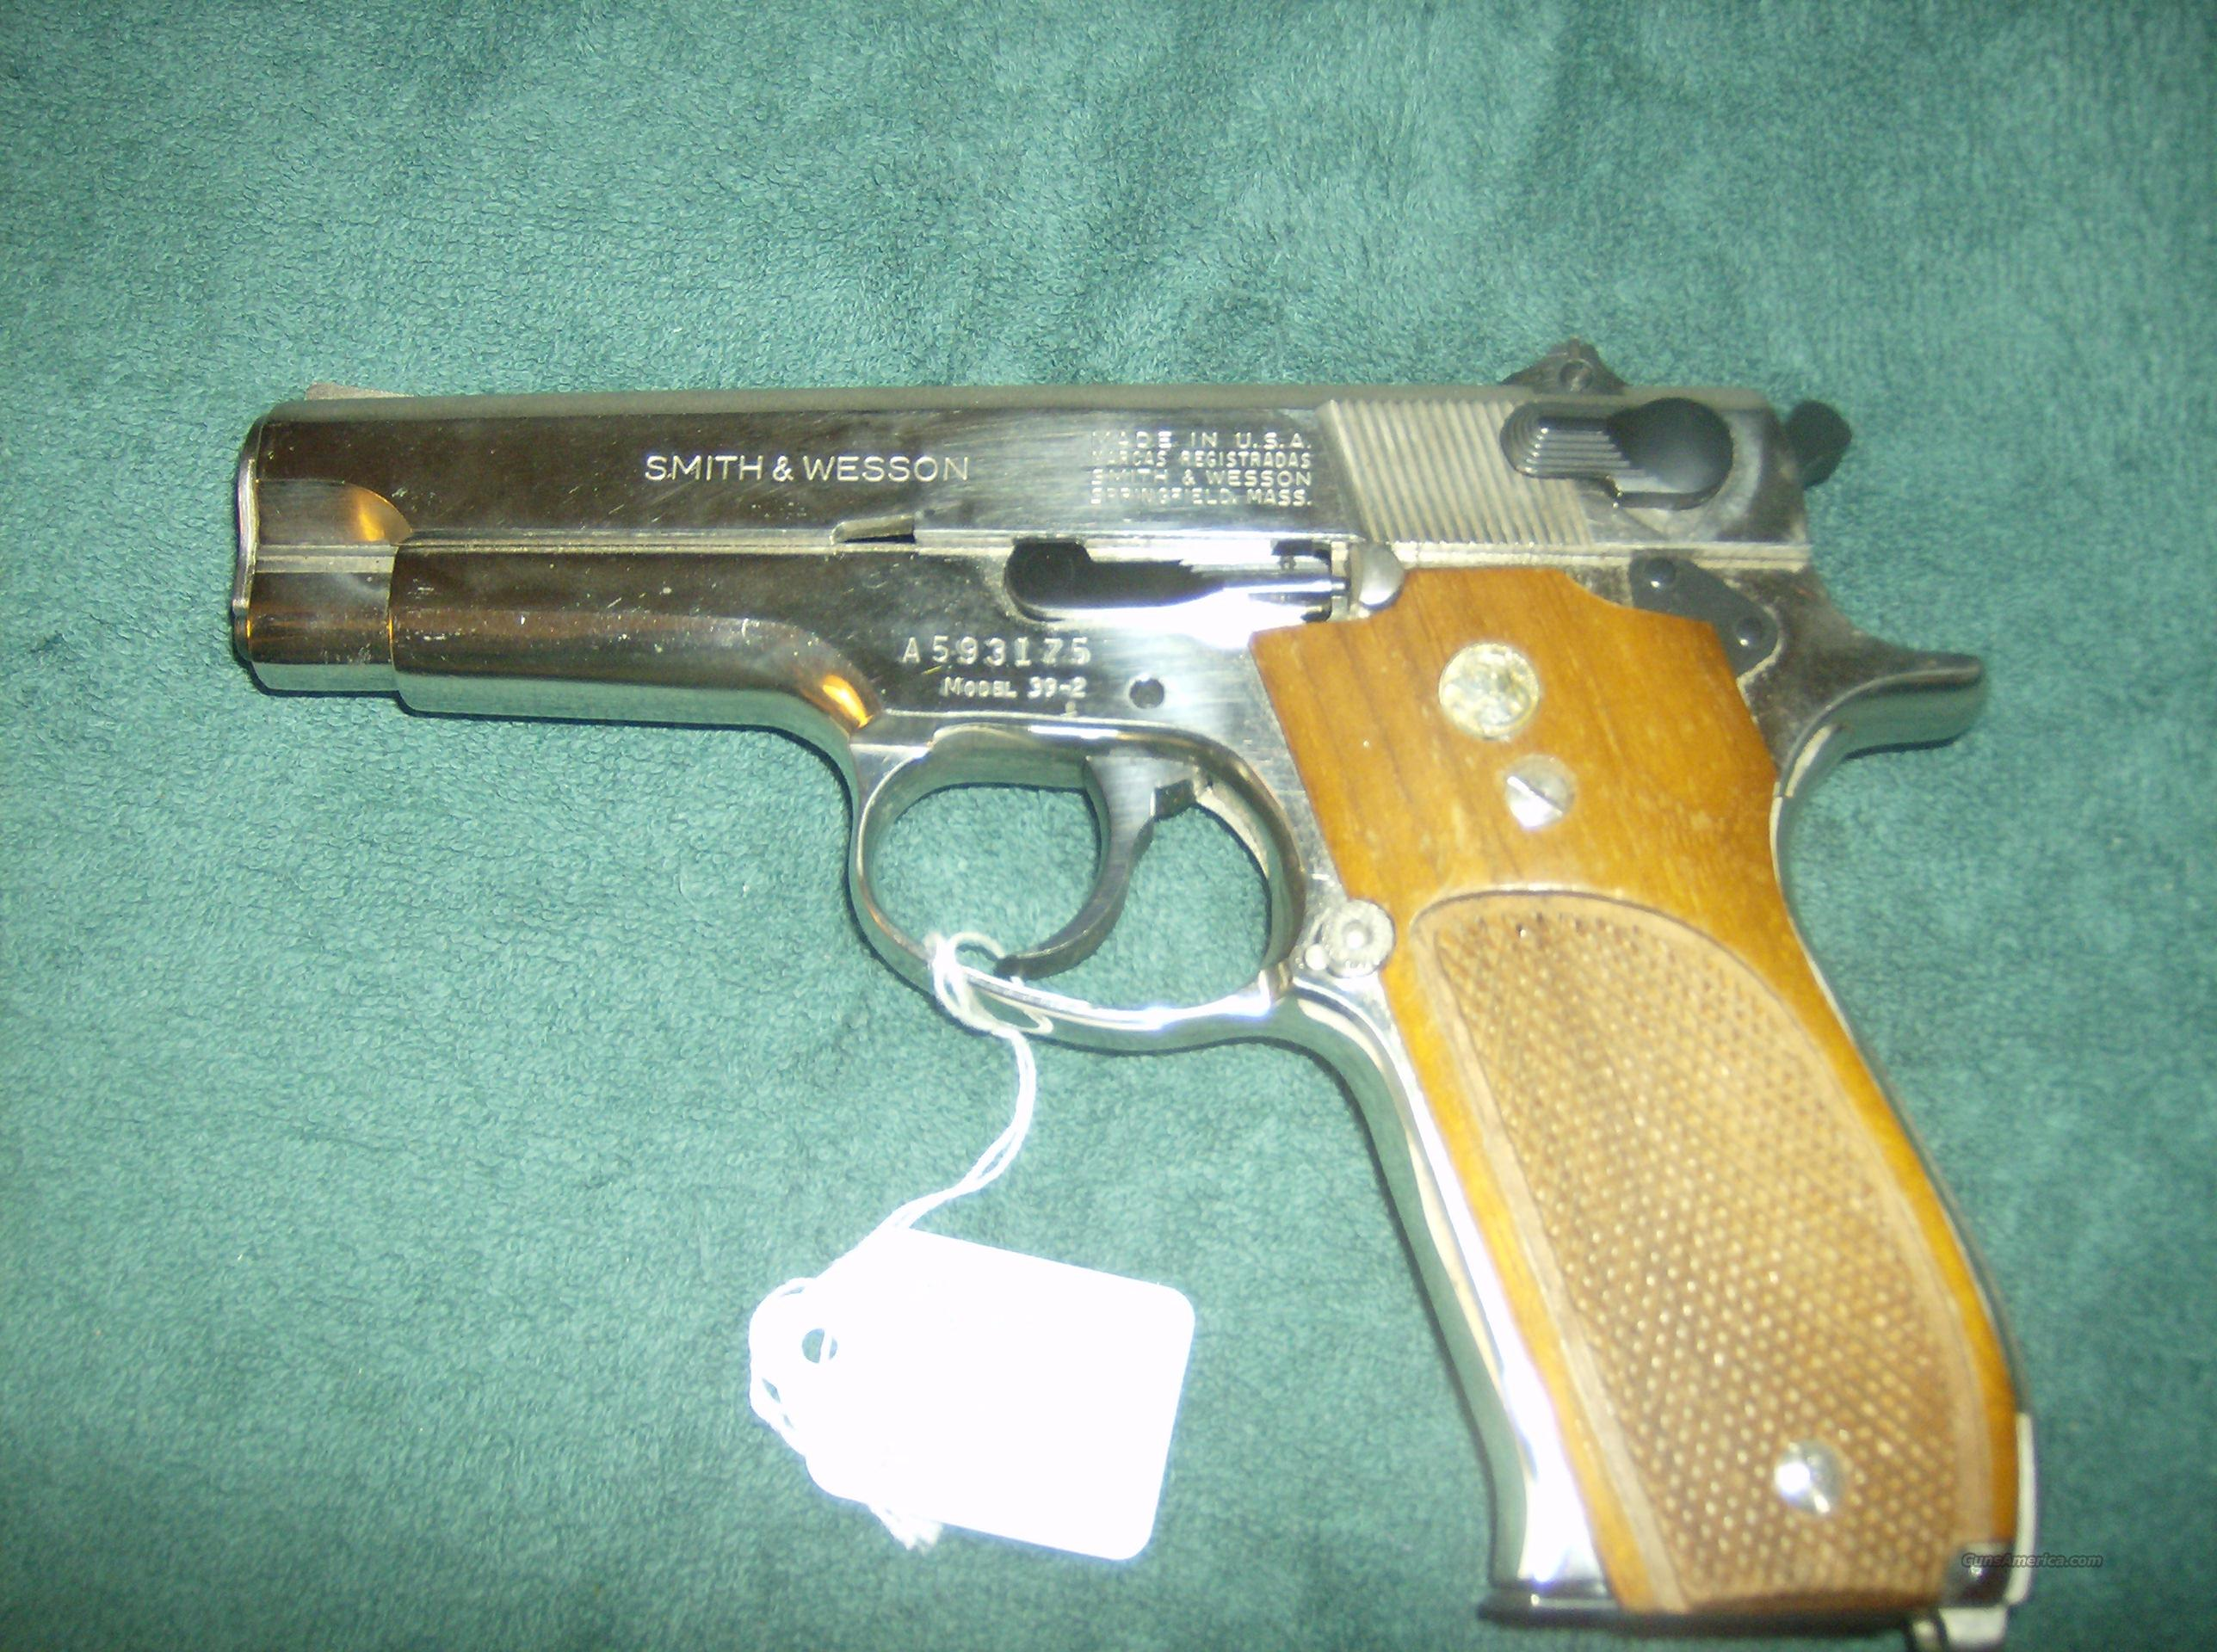 SMITH & WESSON MODEL 39-2NICKEL 9MM  Guns > Pistols > Smith & Wesson Pistols - Autos > Alloy Frame